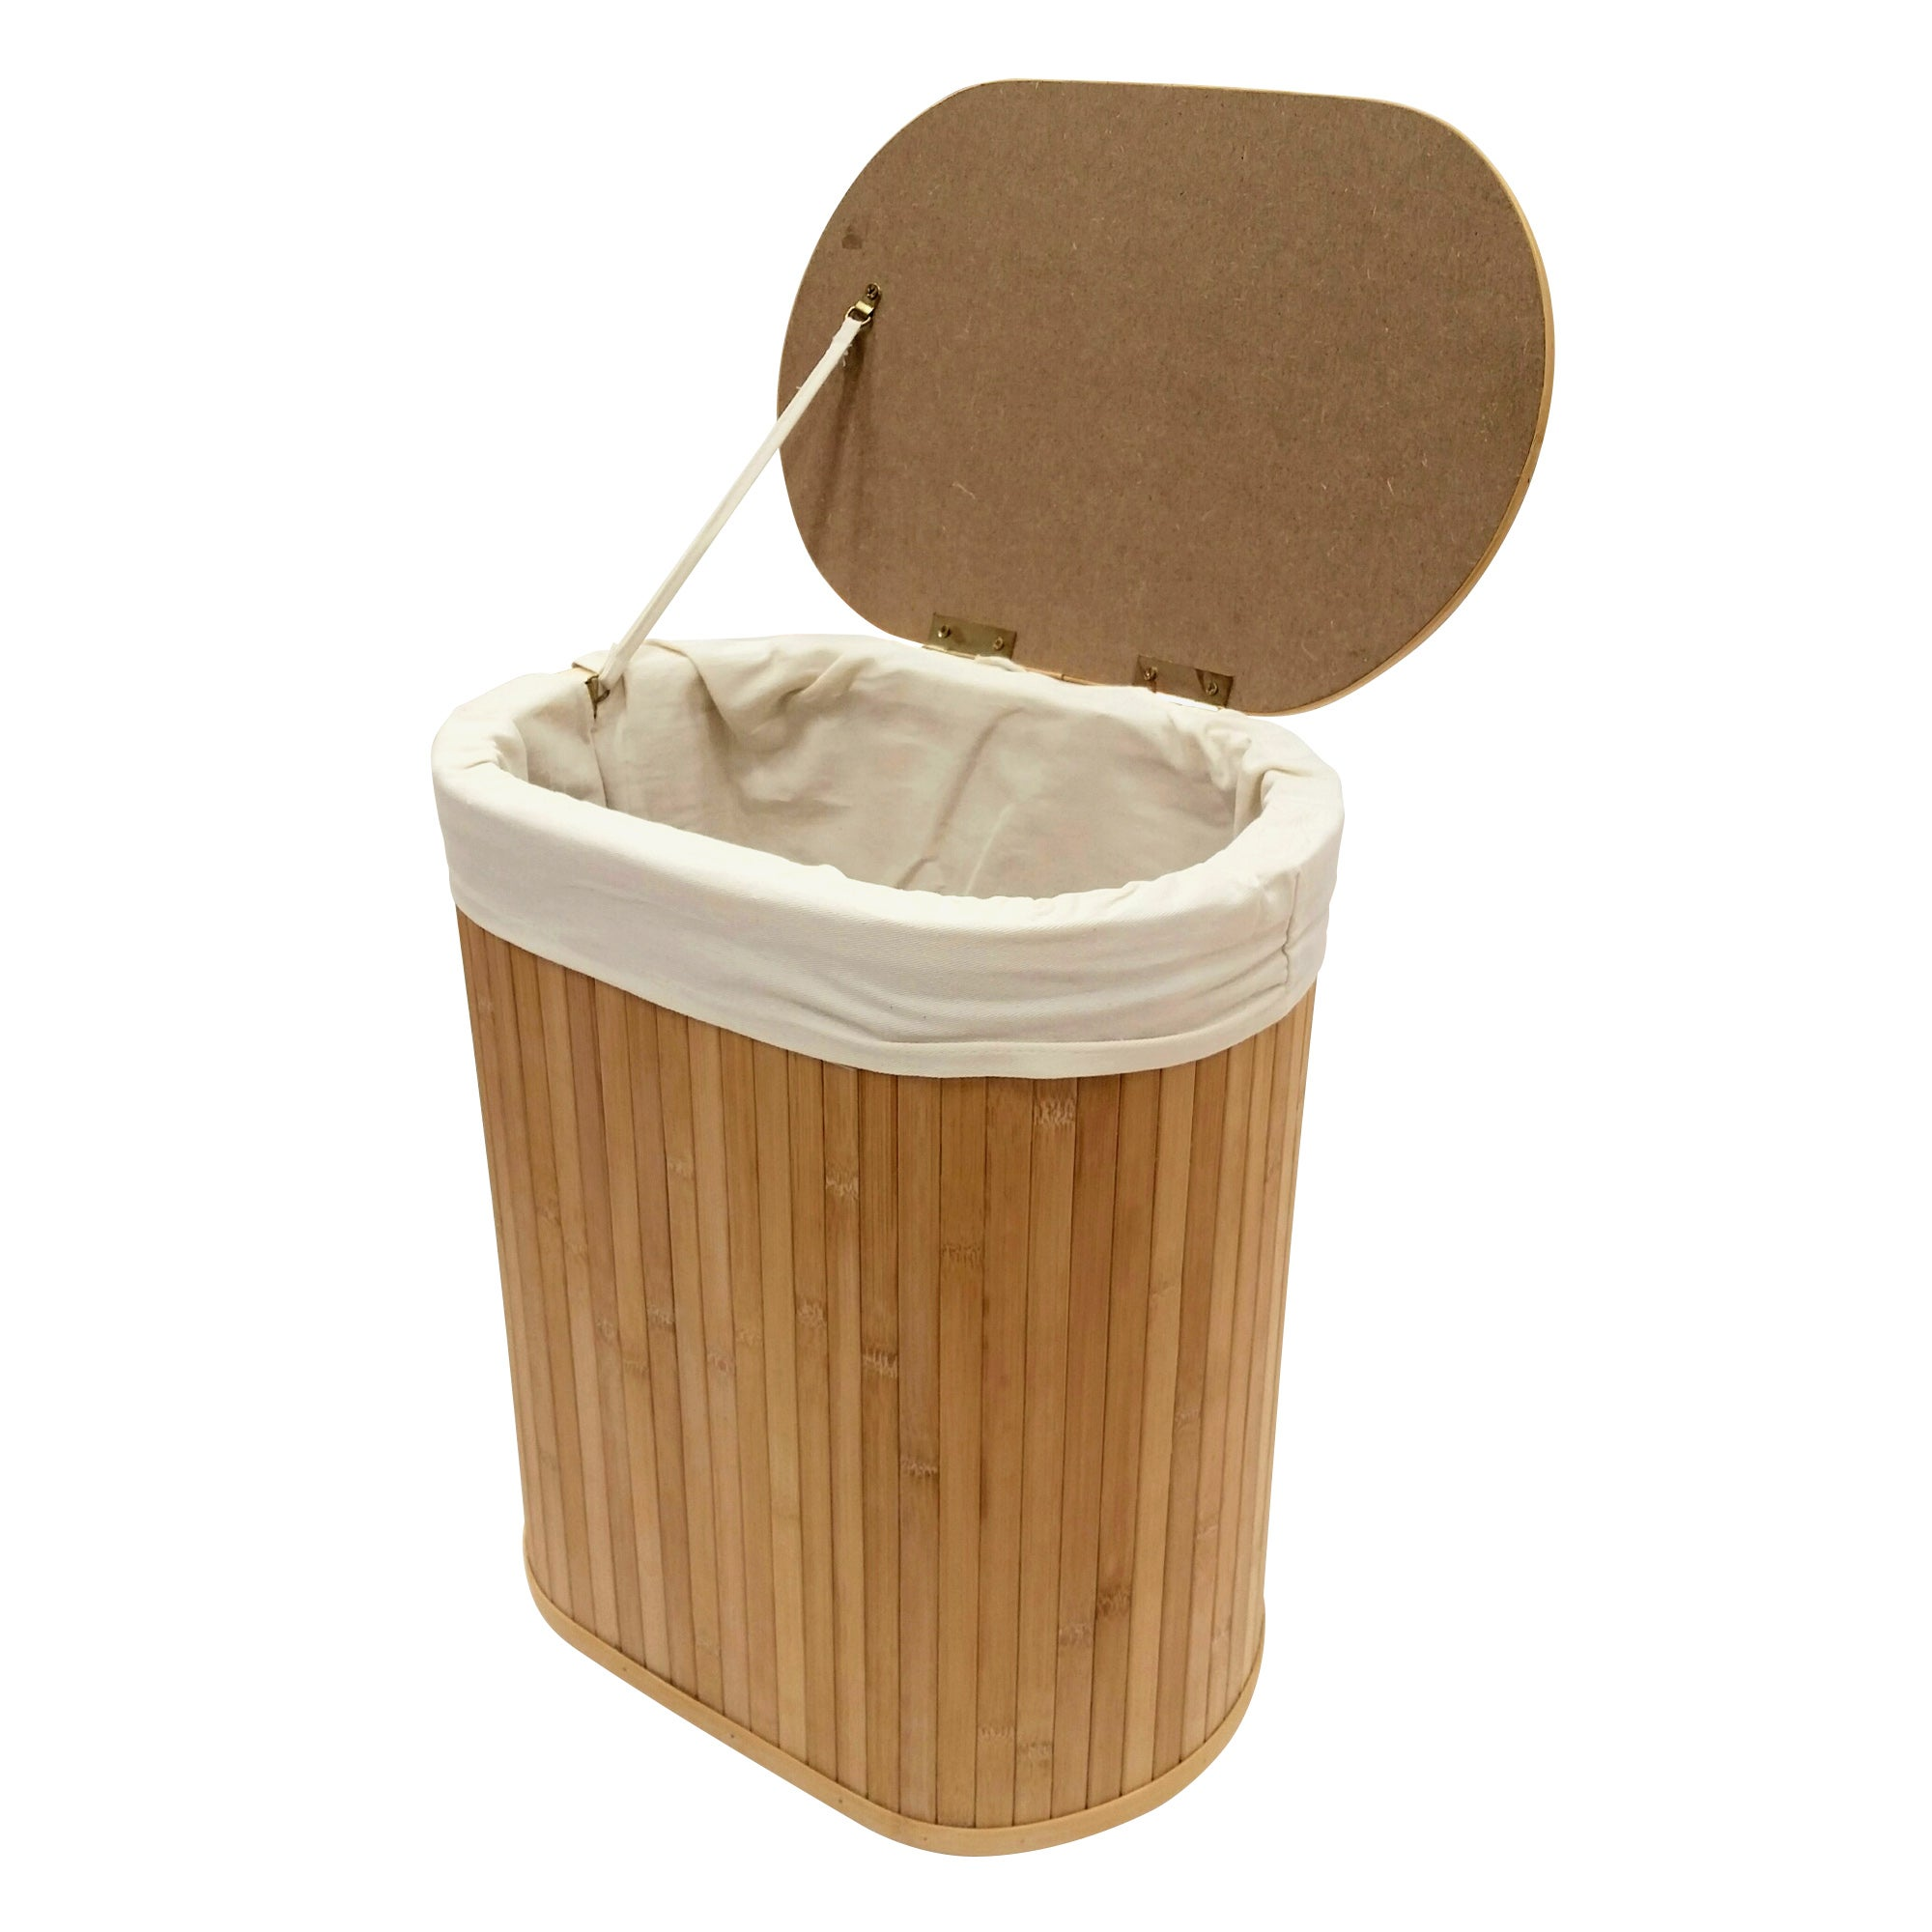 Woodford Oval Bamboo Laundry Hamper